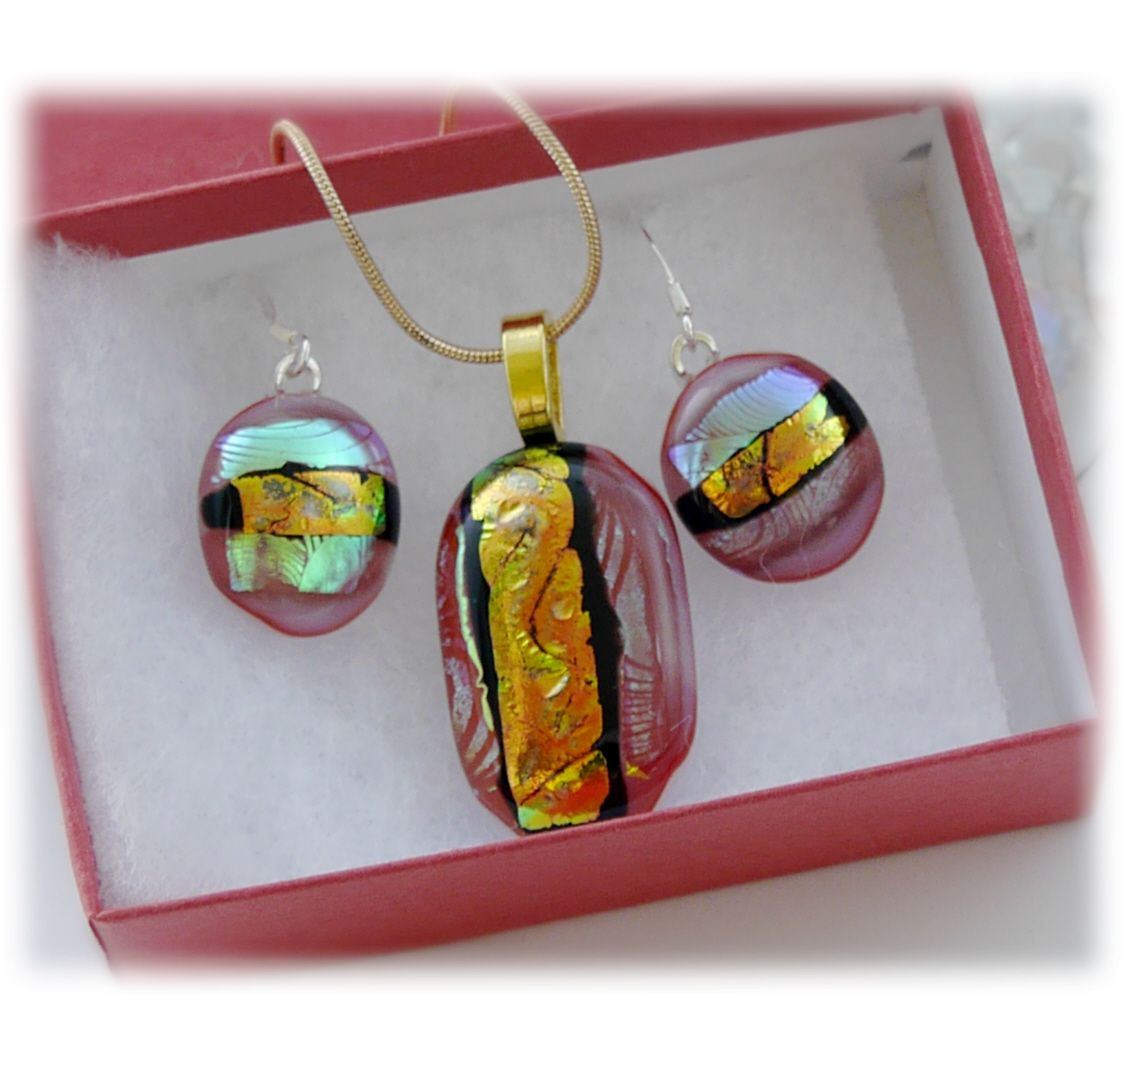 Pendant Earring Set 059 #1804 FREE 10.00